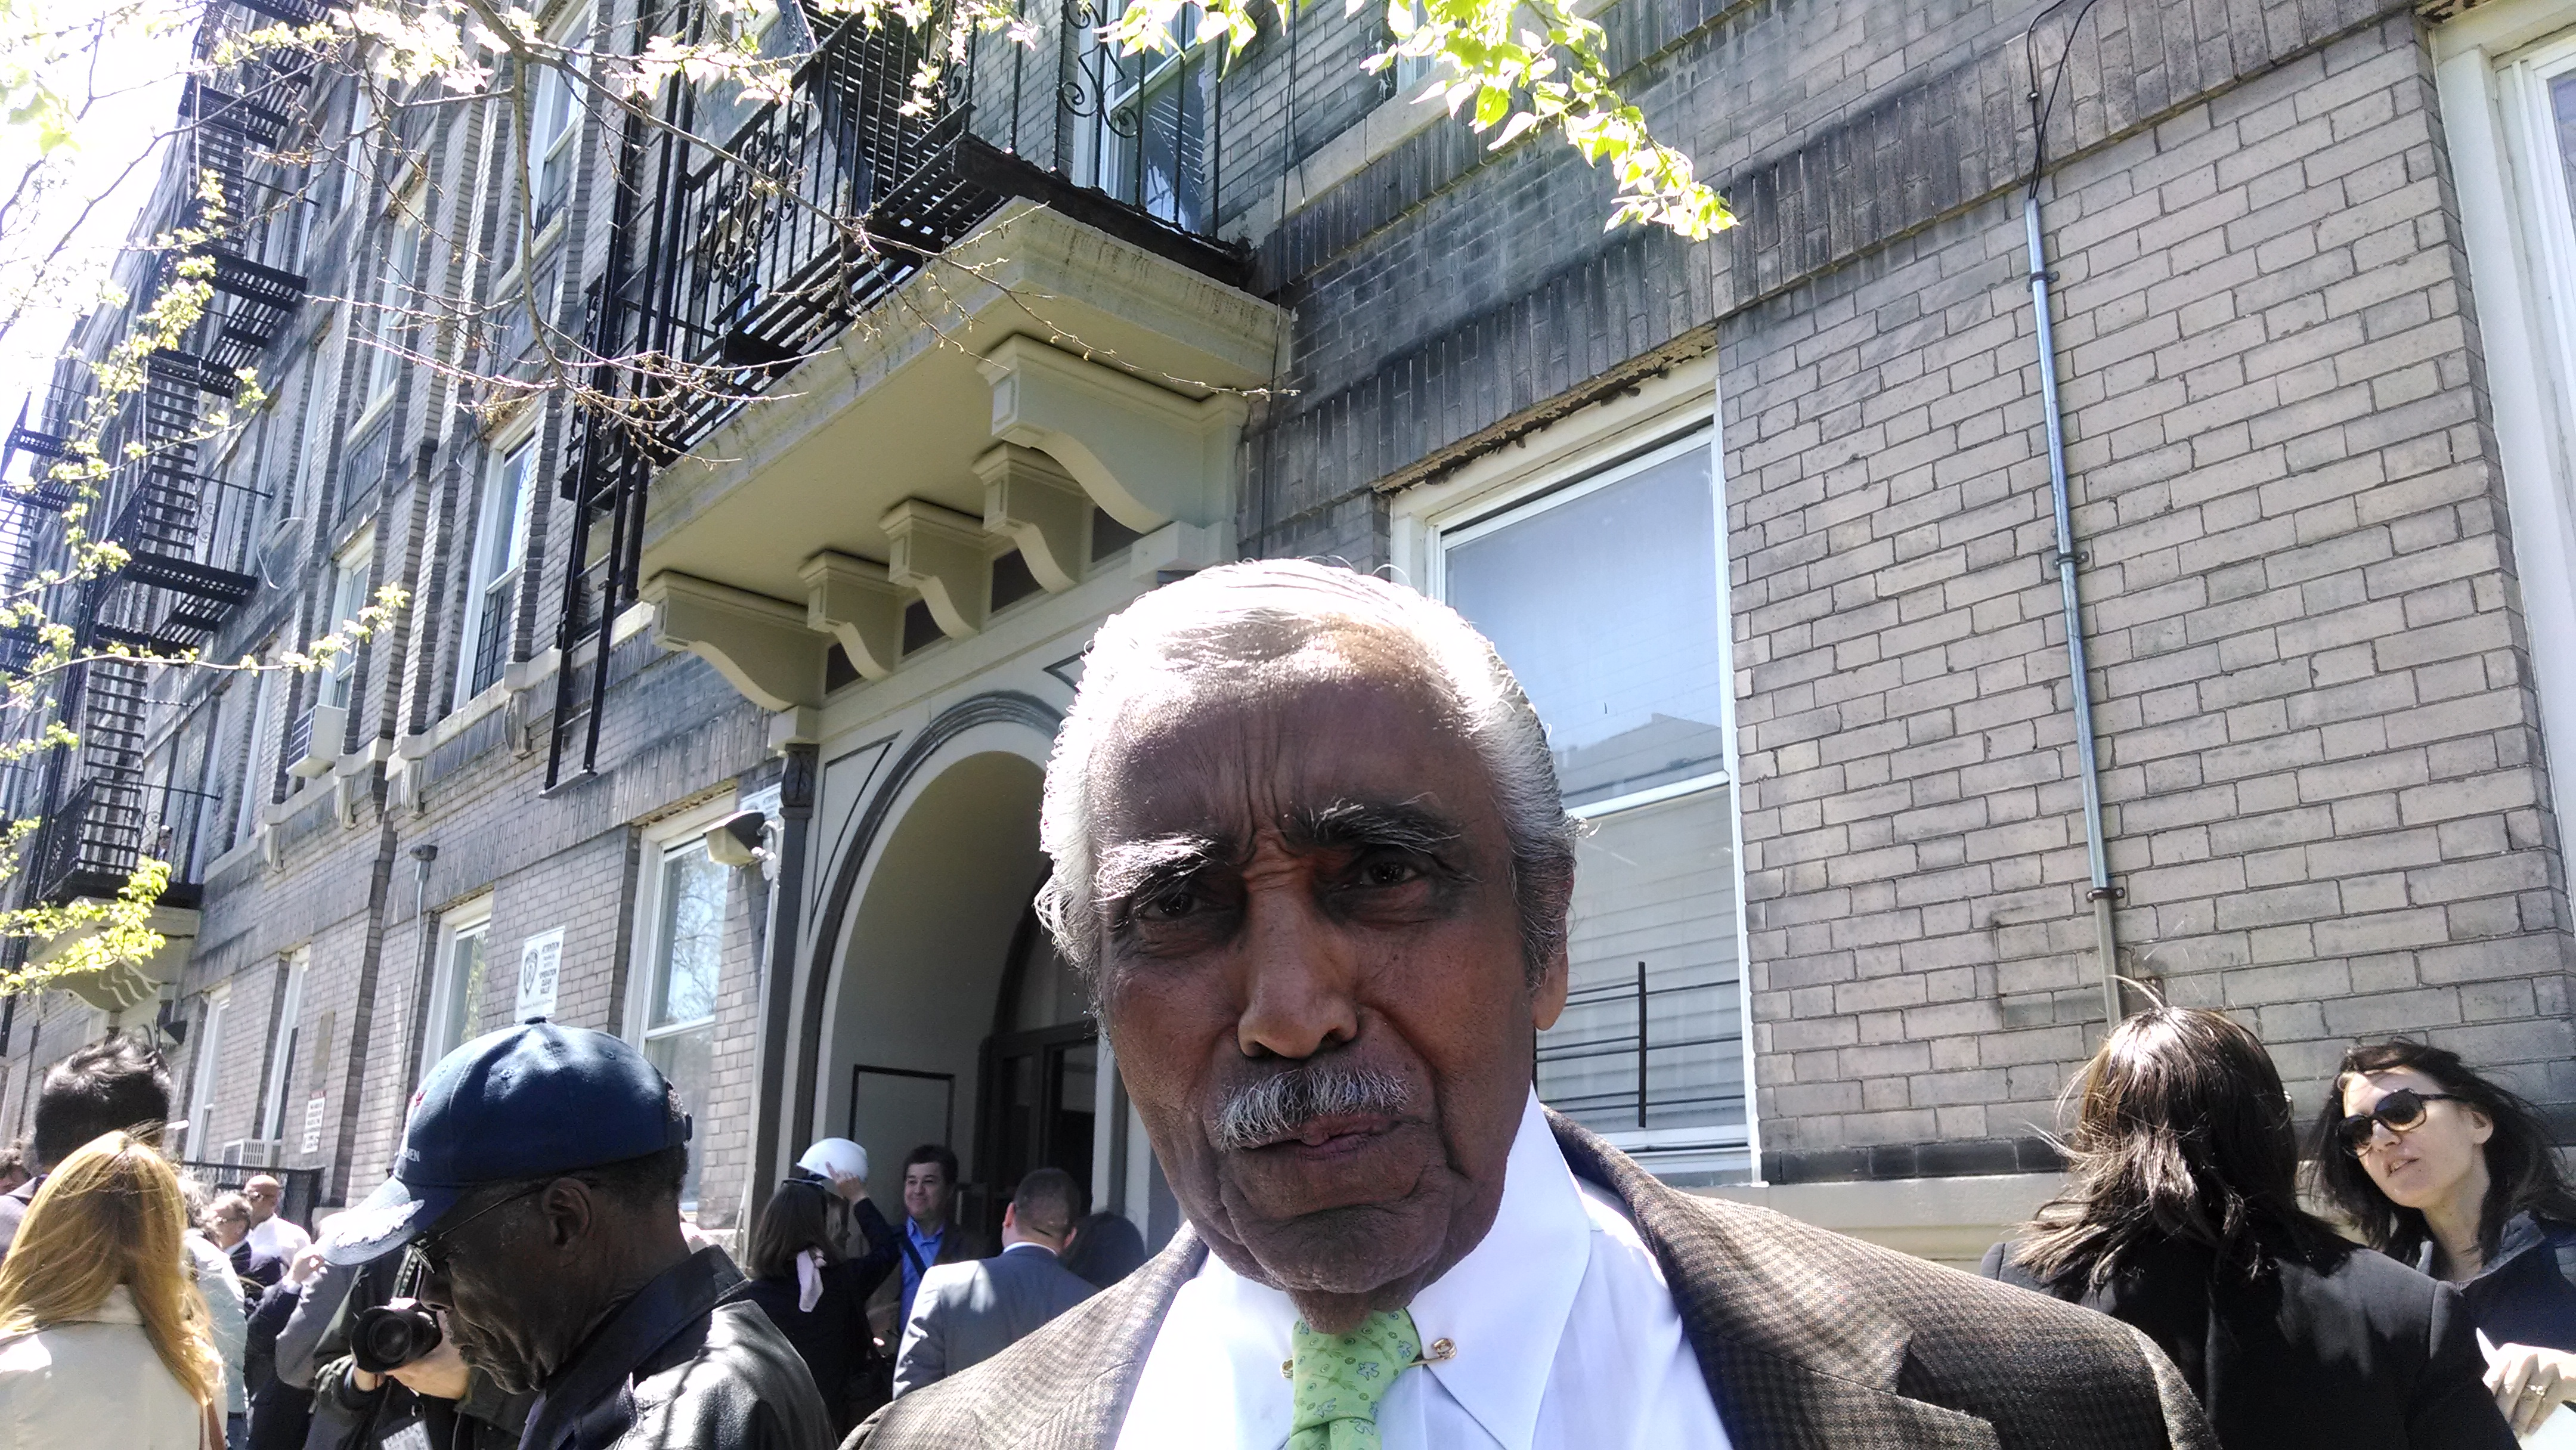 Charlie Rangel in the Bronx today.